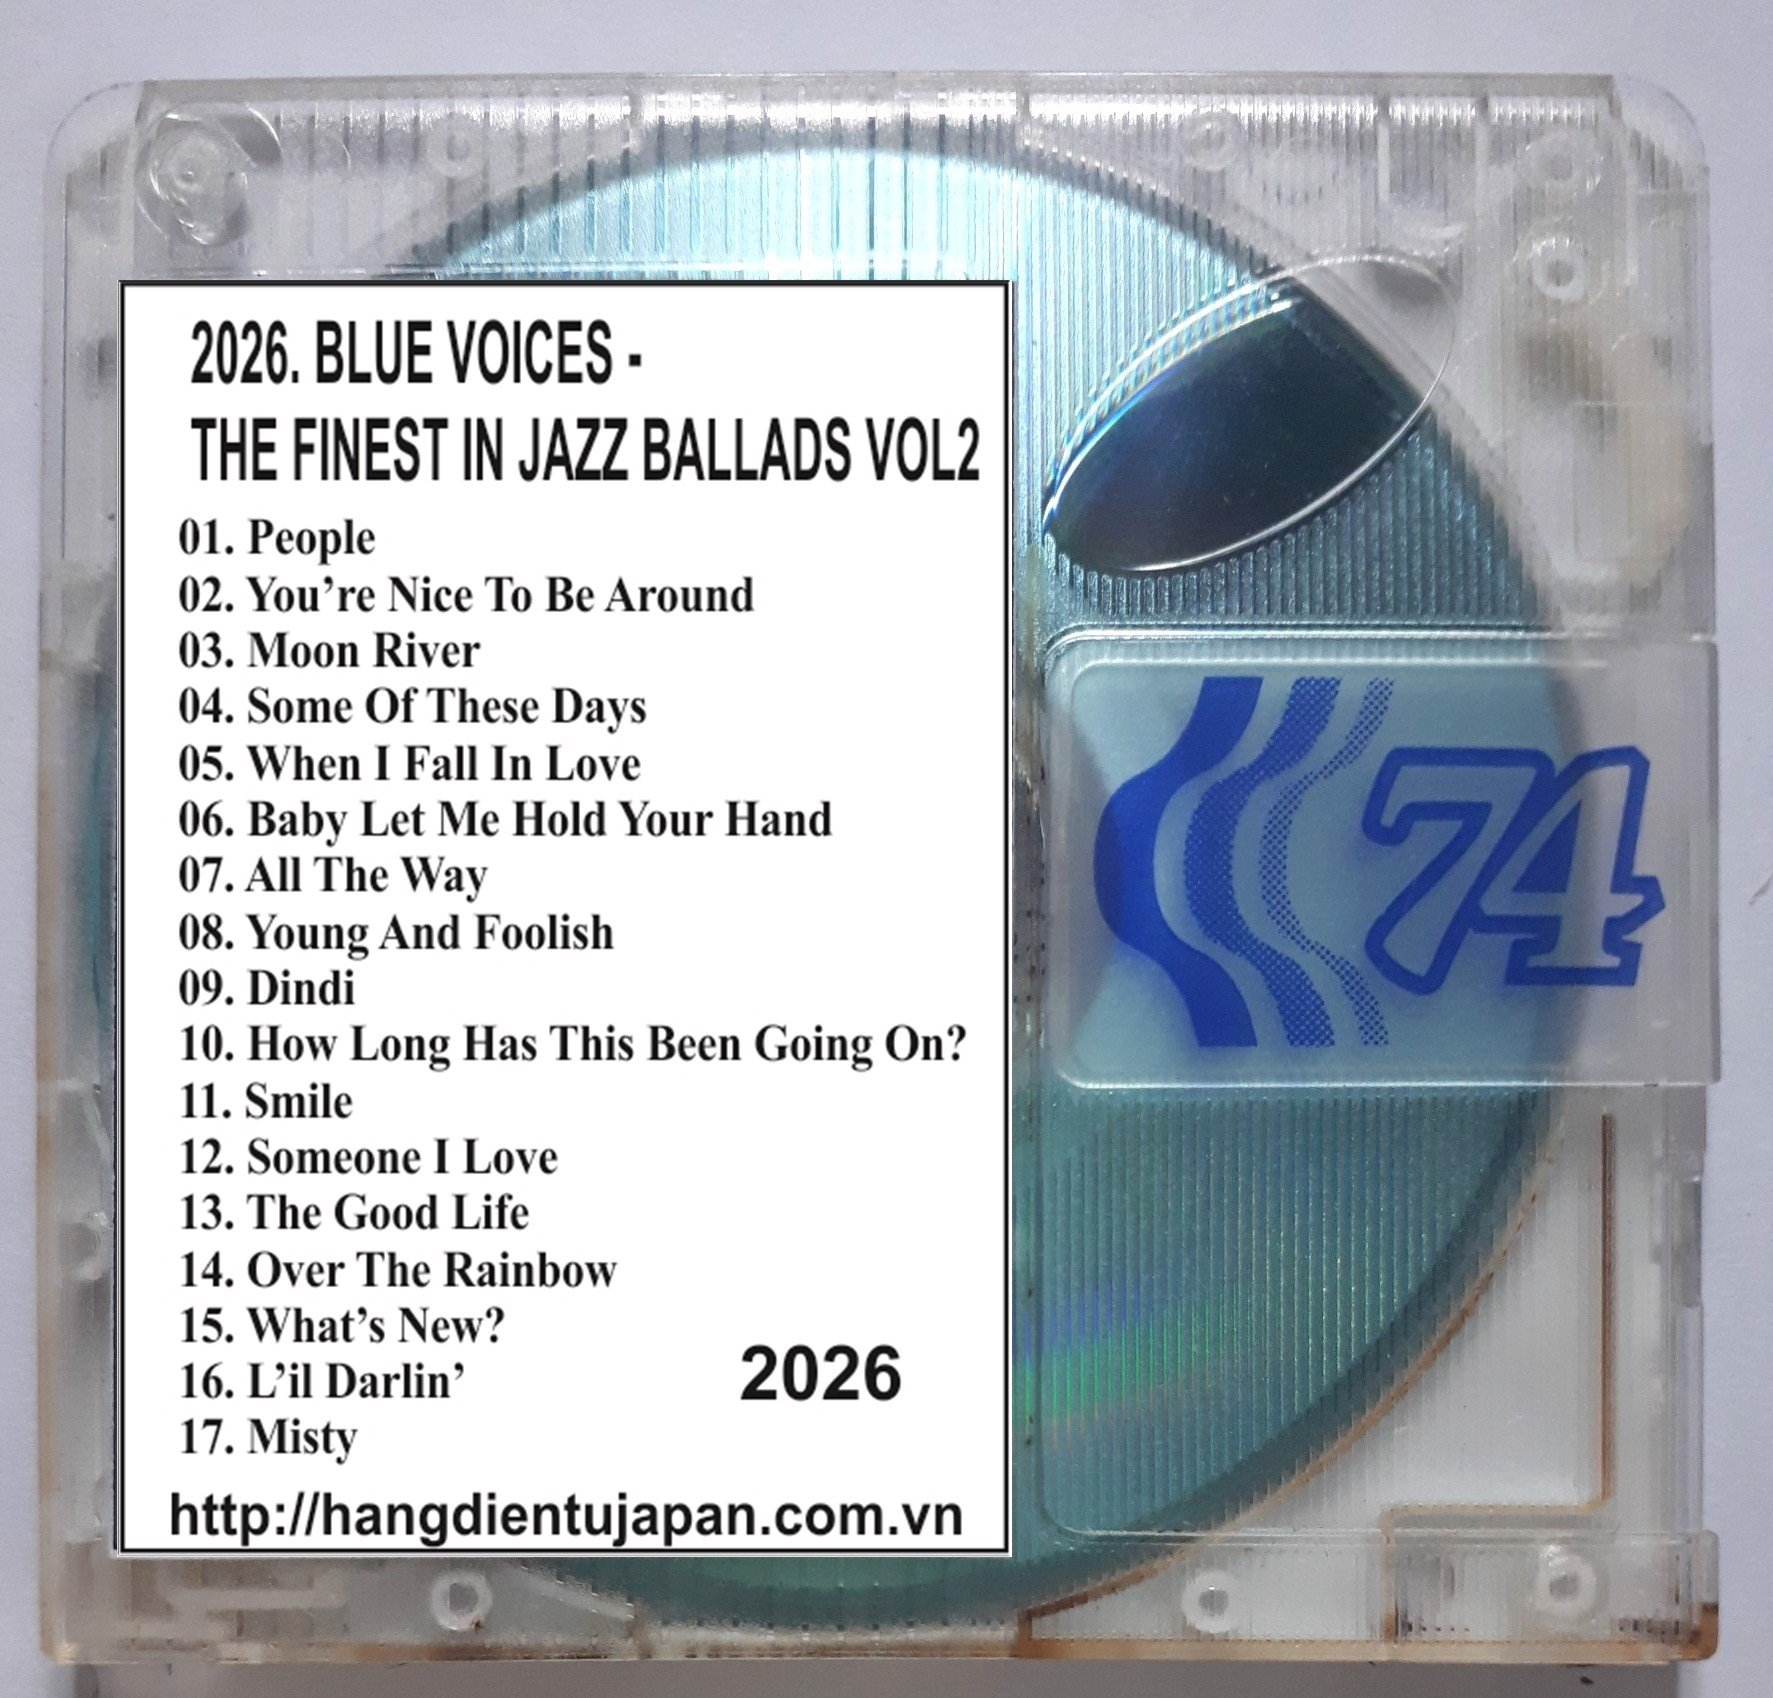 2026. AUDIOPHILE - BLUE VOICES - THE FINEST IN JAZZ BALLADS VOL2